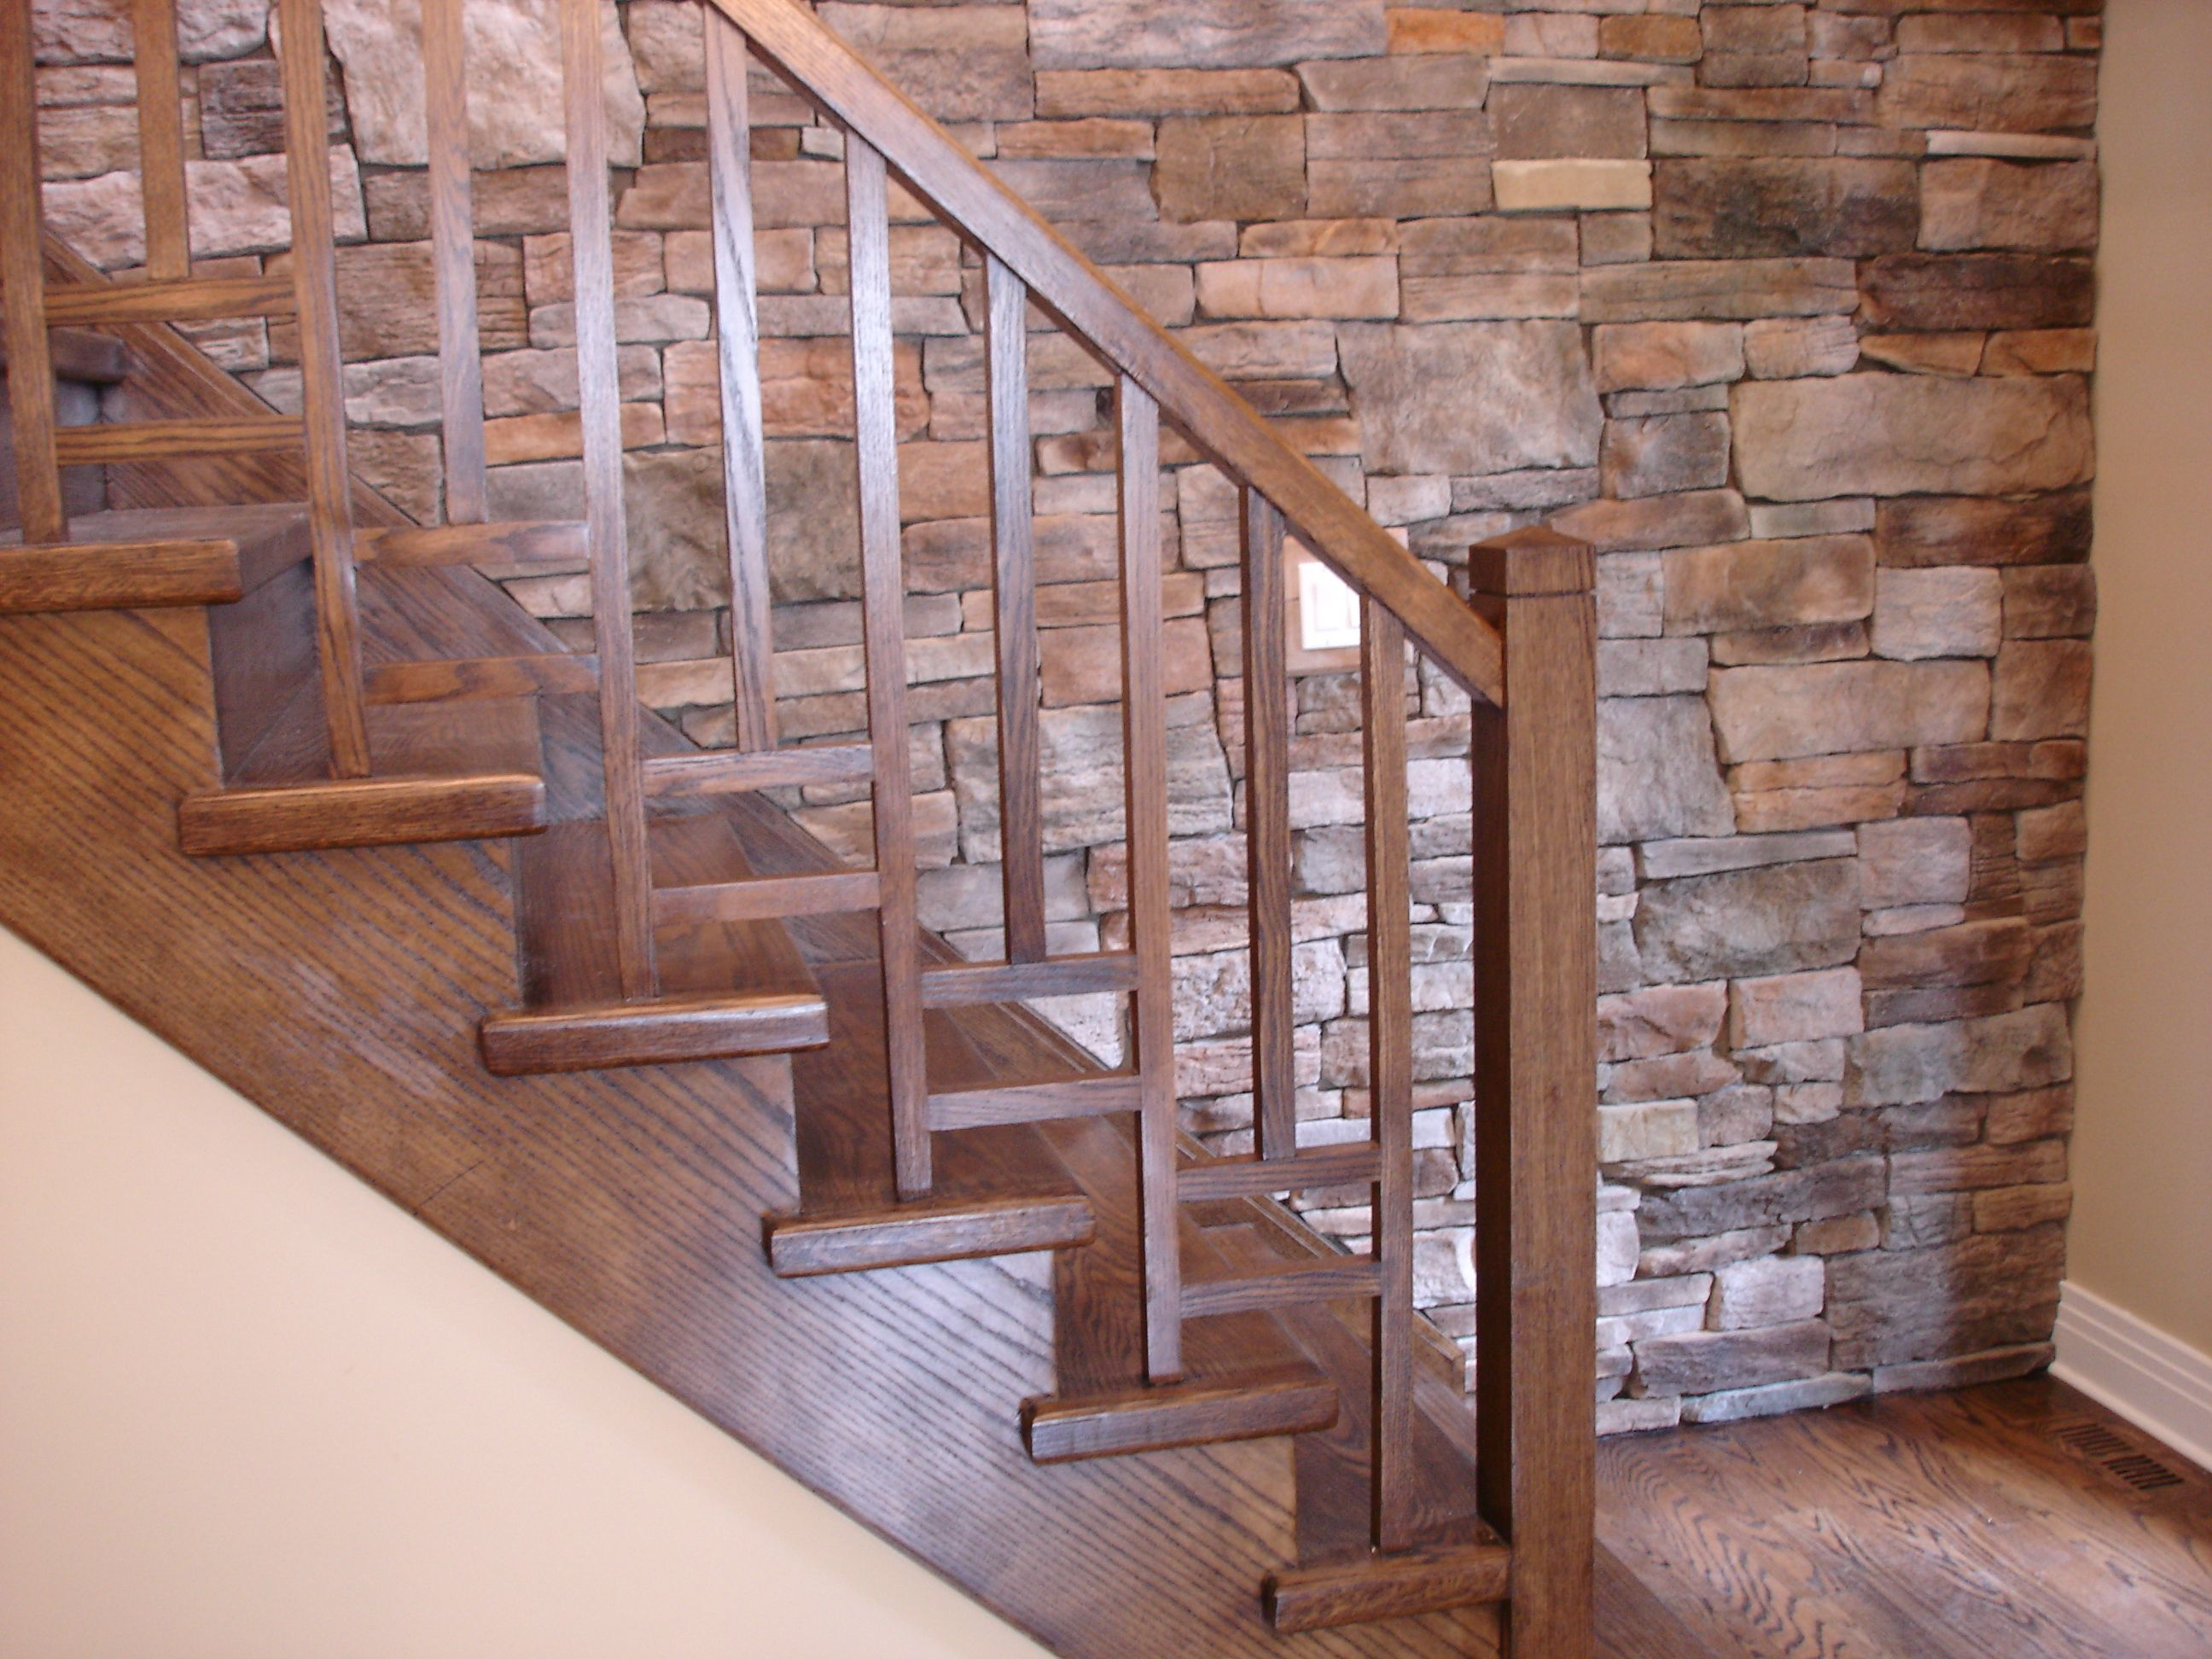 Stair Railing Types Stair Banisters And Railings Ideas